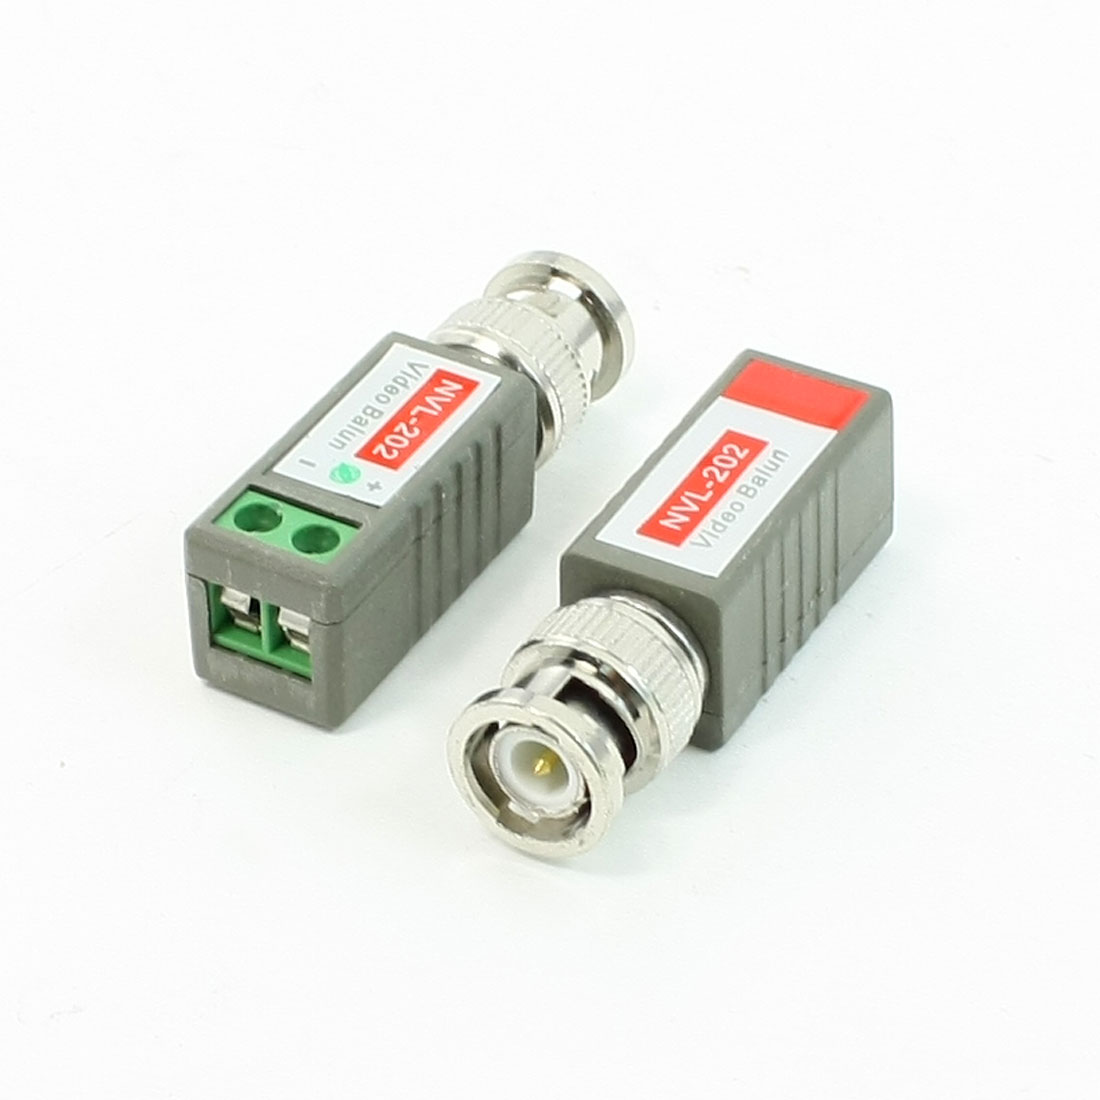 2 Pcs 1 Channel BNC Passive Video Balun Transceiver Gray